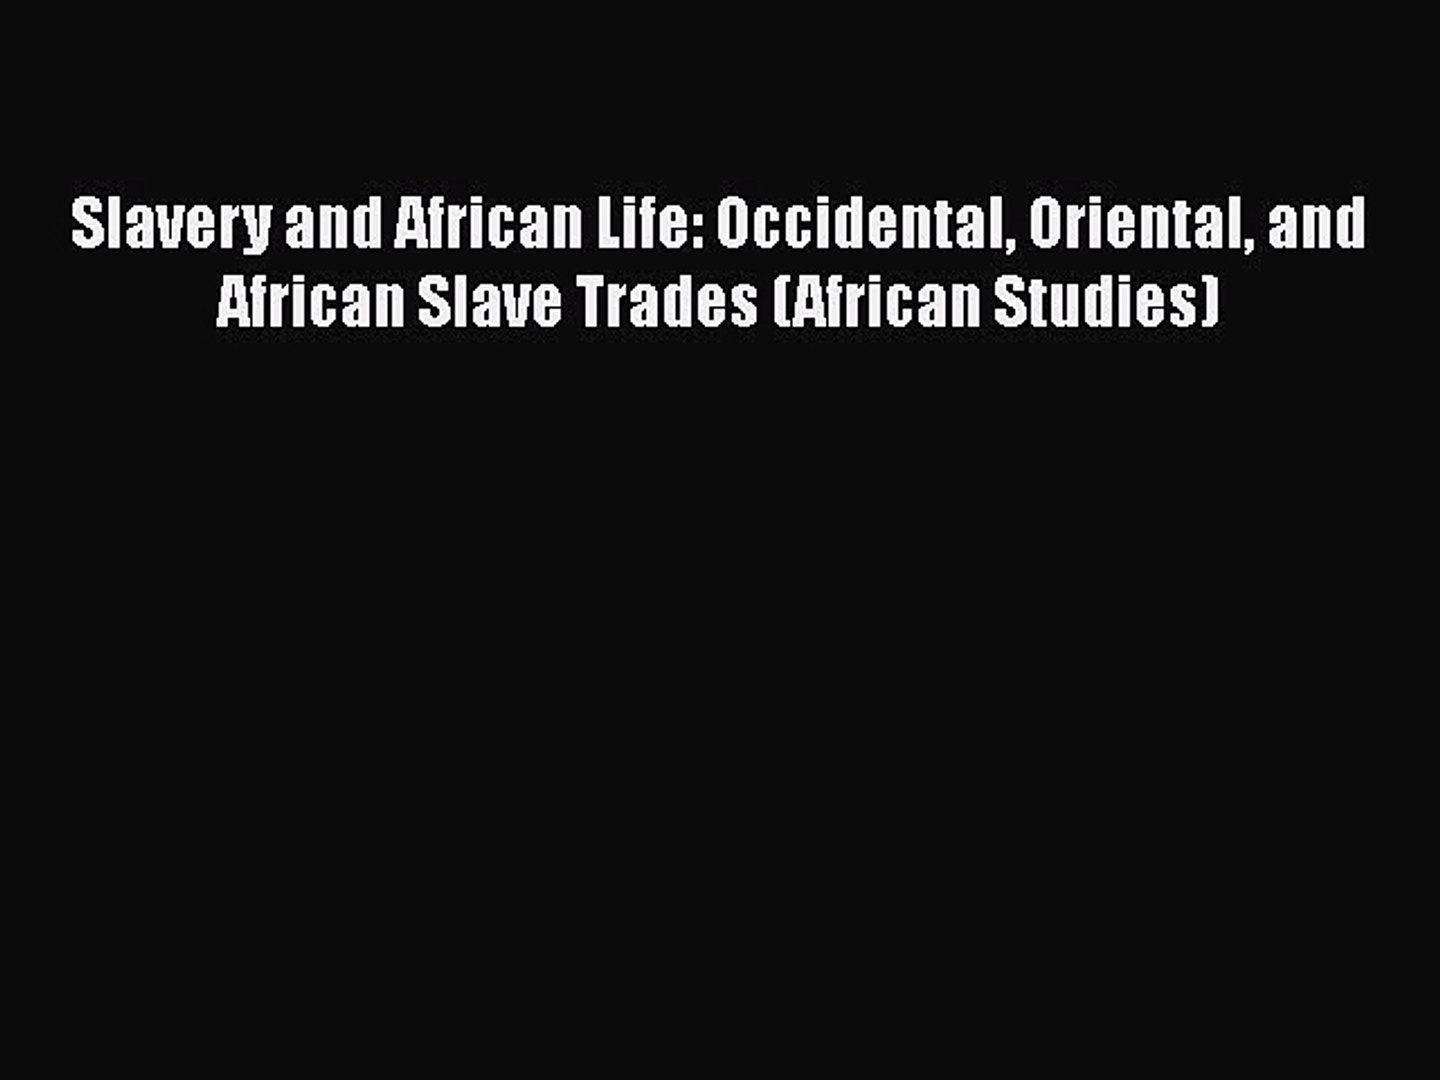 [Read book] Slavery and African Life: Occidental Oriental and African Slave Trades (African